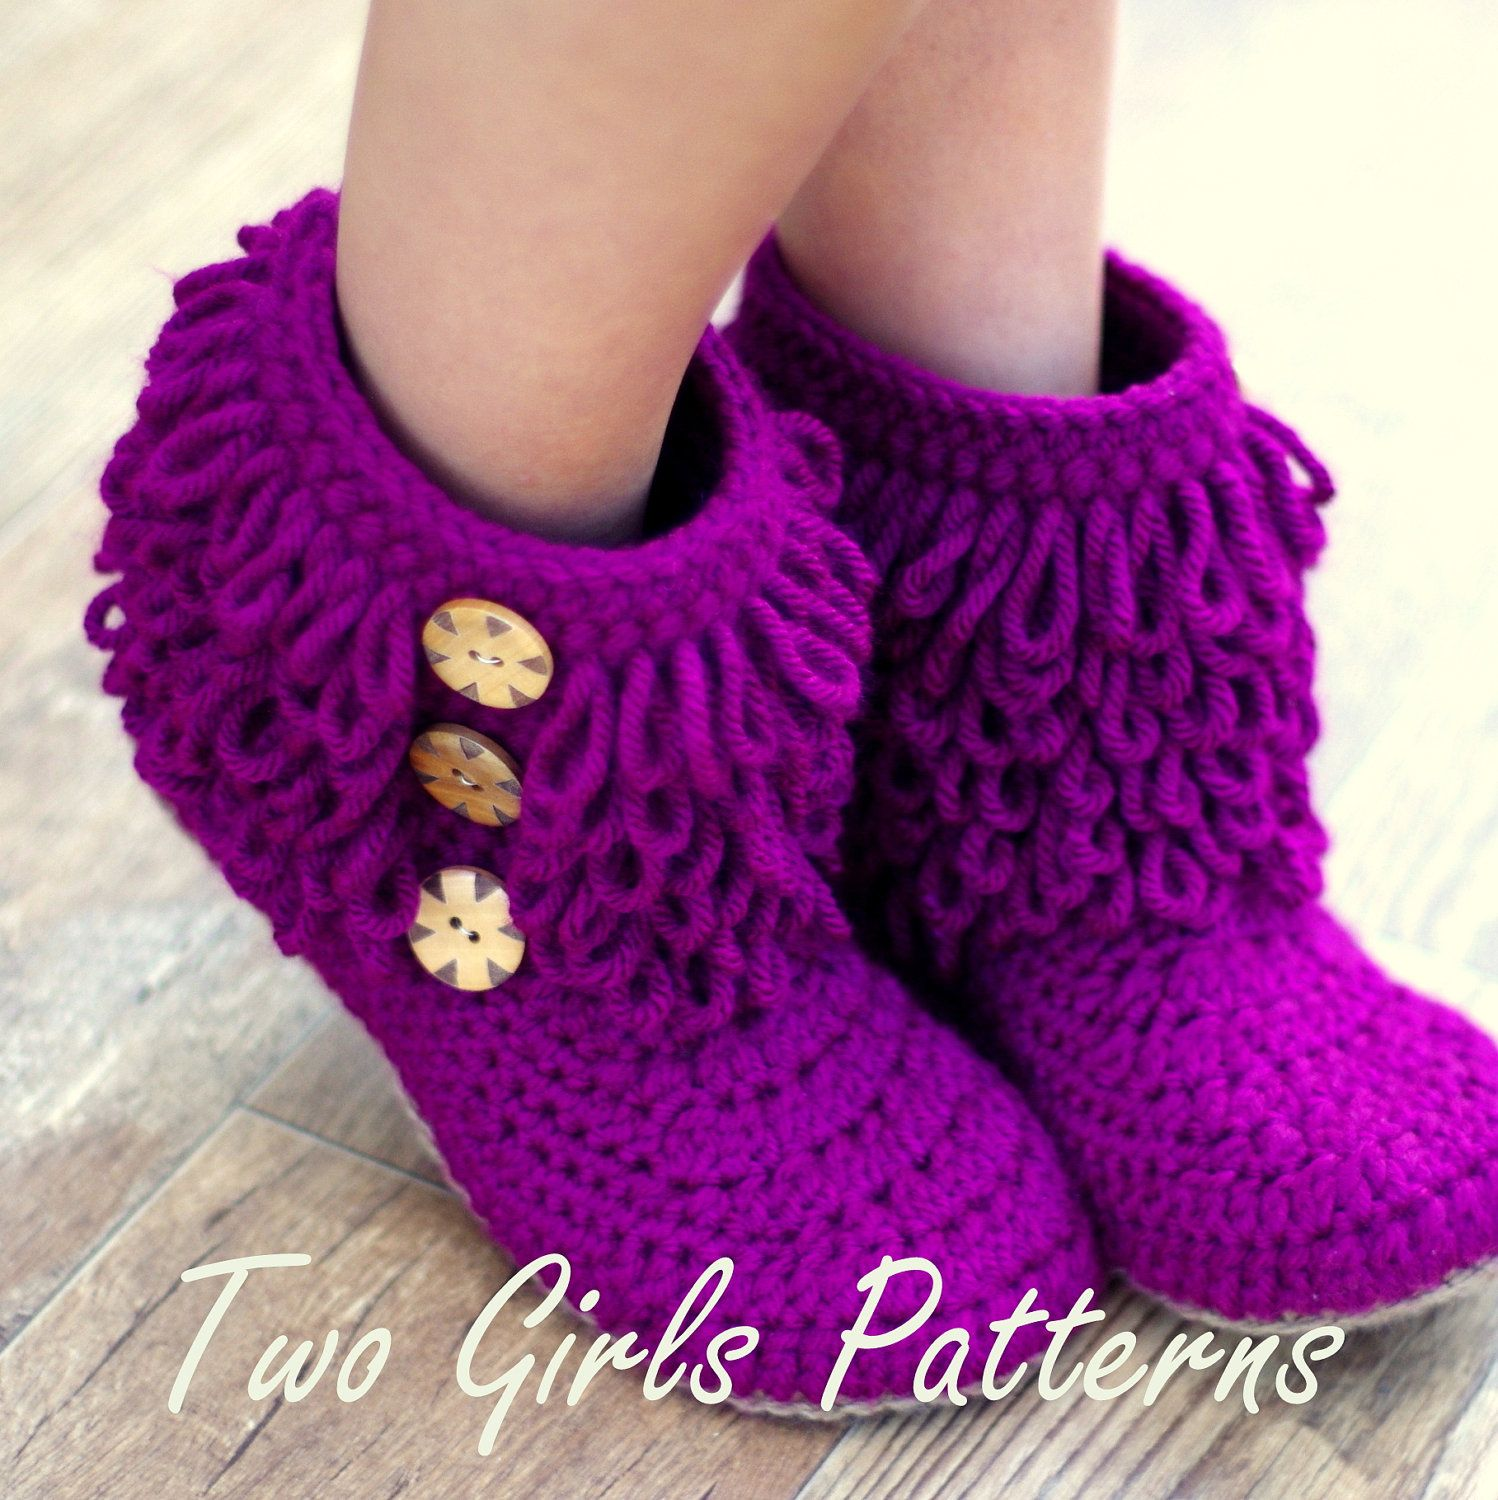 Crochet pattern 213 womens crochet boot house slipper pdf crochet crochet pattern 213 womens crochet boot house slipper pdf crochet pattern womens 5 11 instant download kc550 bankloansurffo Image collections